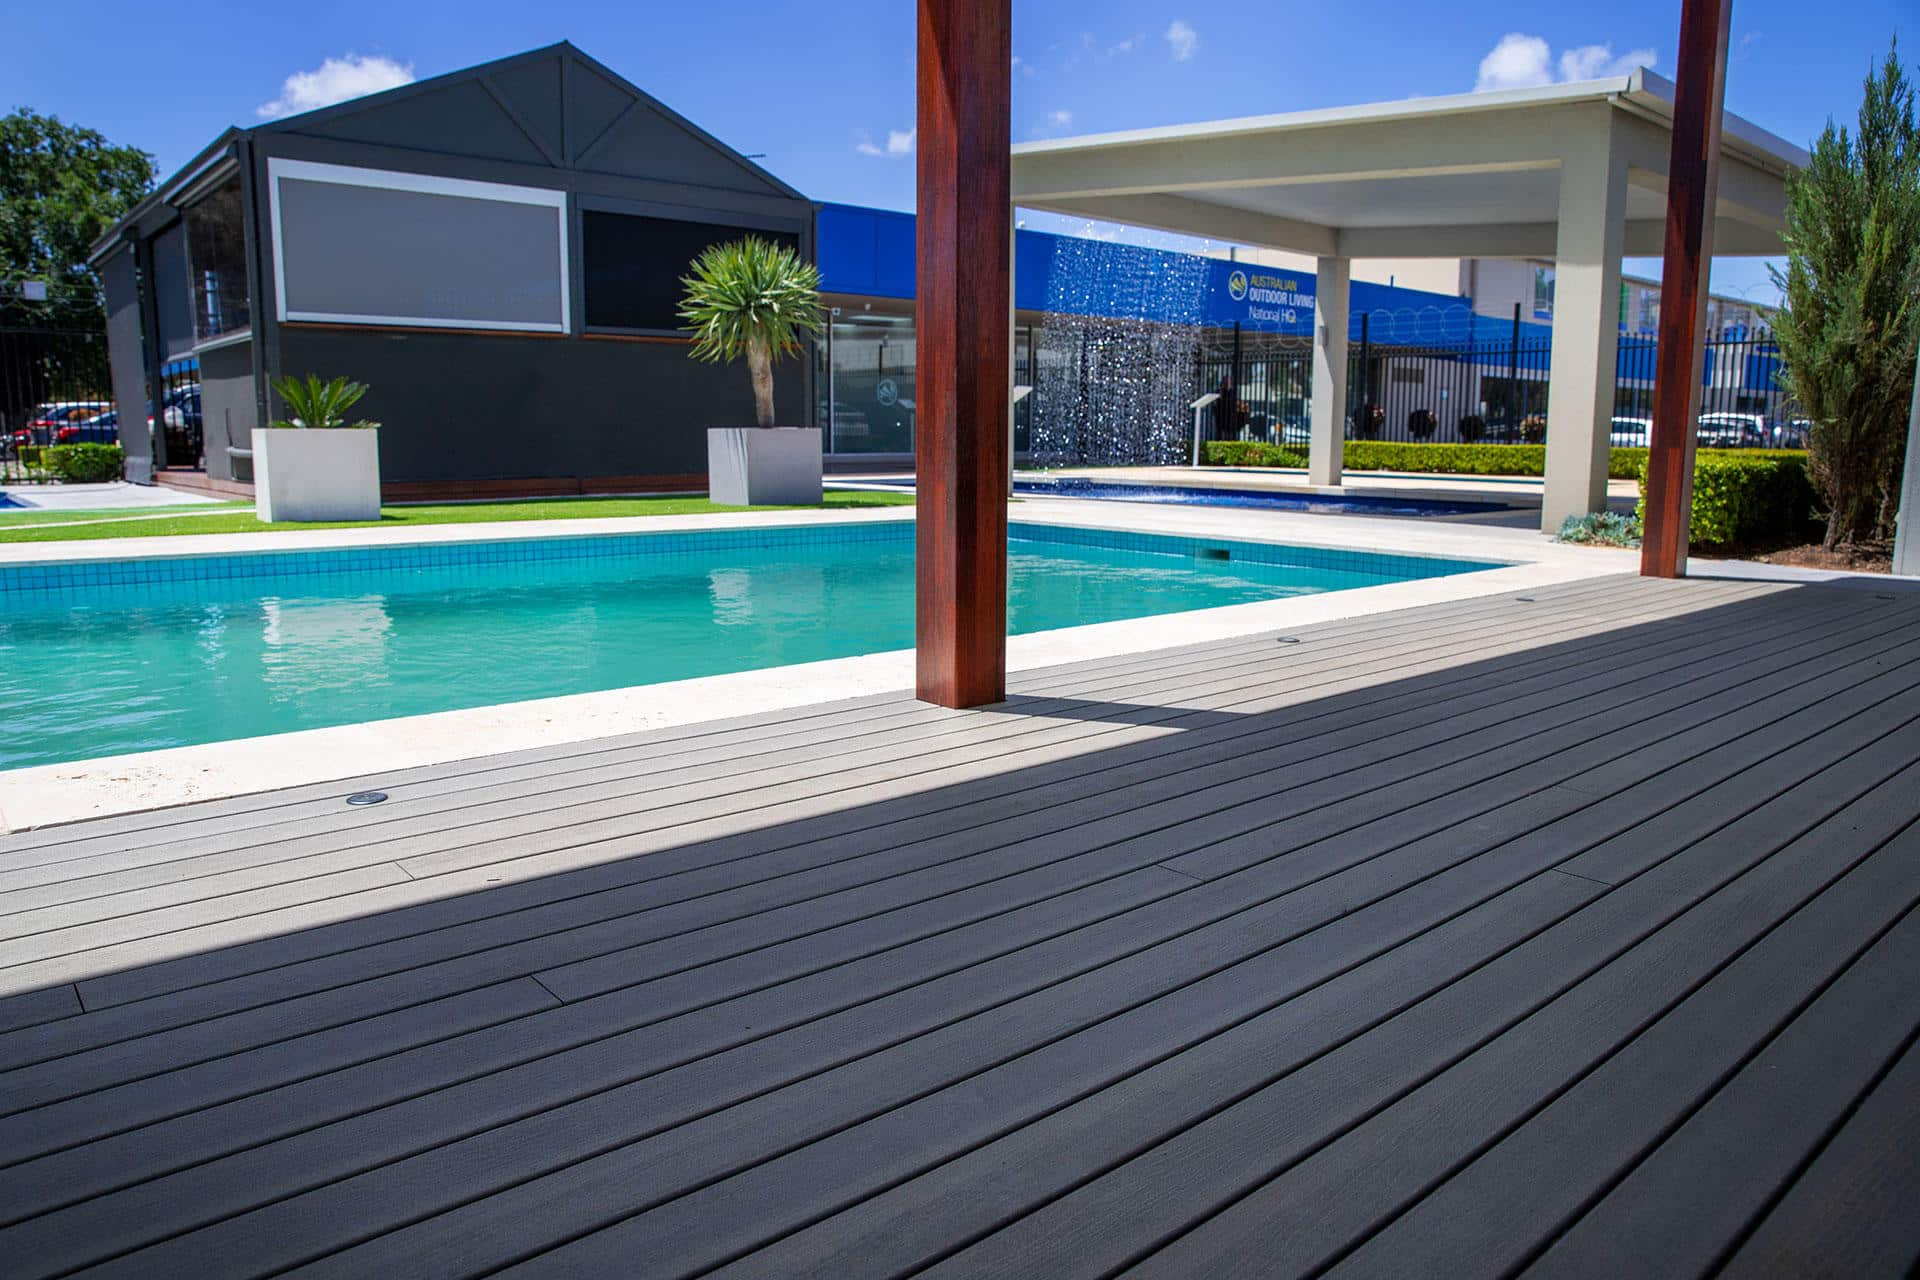 Australian Outdoor Living unveils new outdoor display centre with Super Saturday specials - Check out our range of outdoor blinds, roller shutters, artificial grass, timber decking, pergolas, verandahs and carports, Australian Outdoor Living.